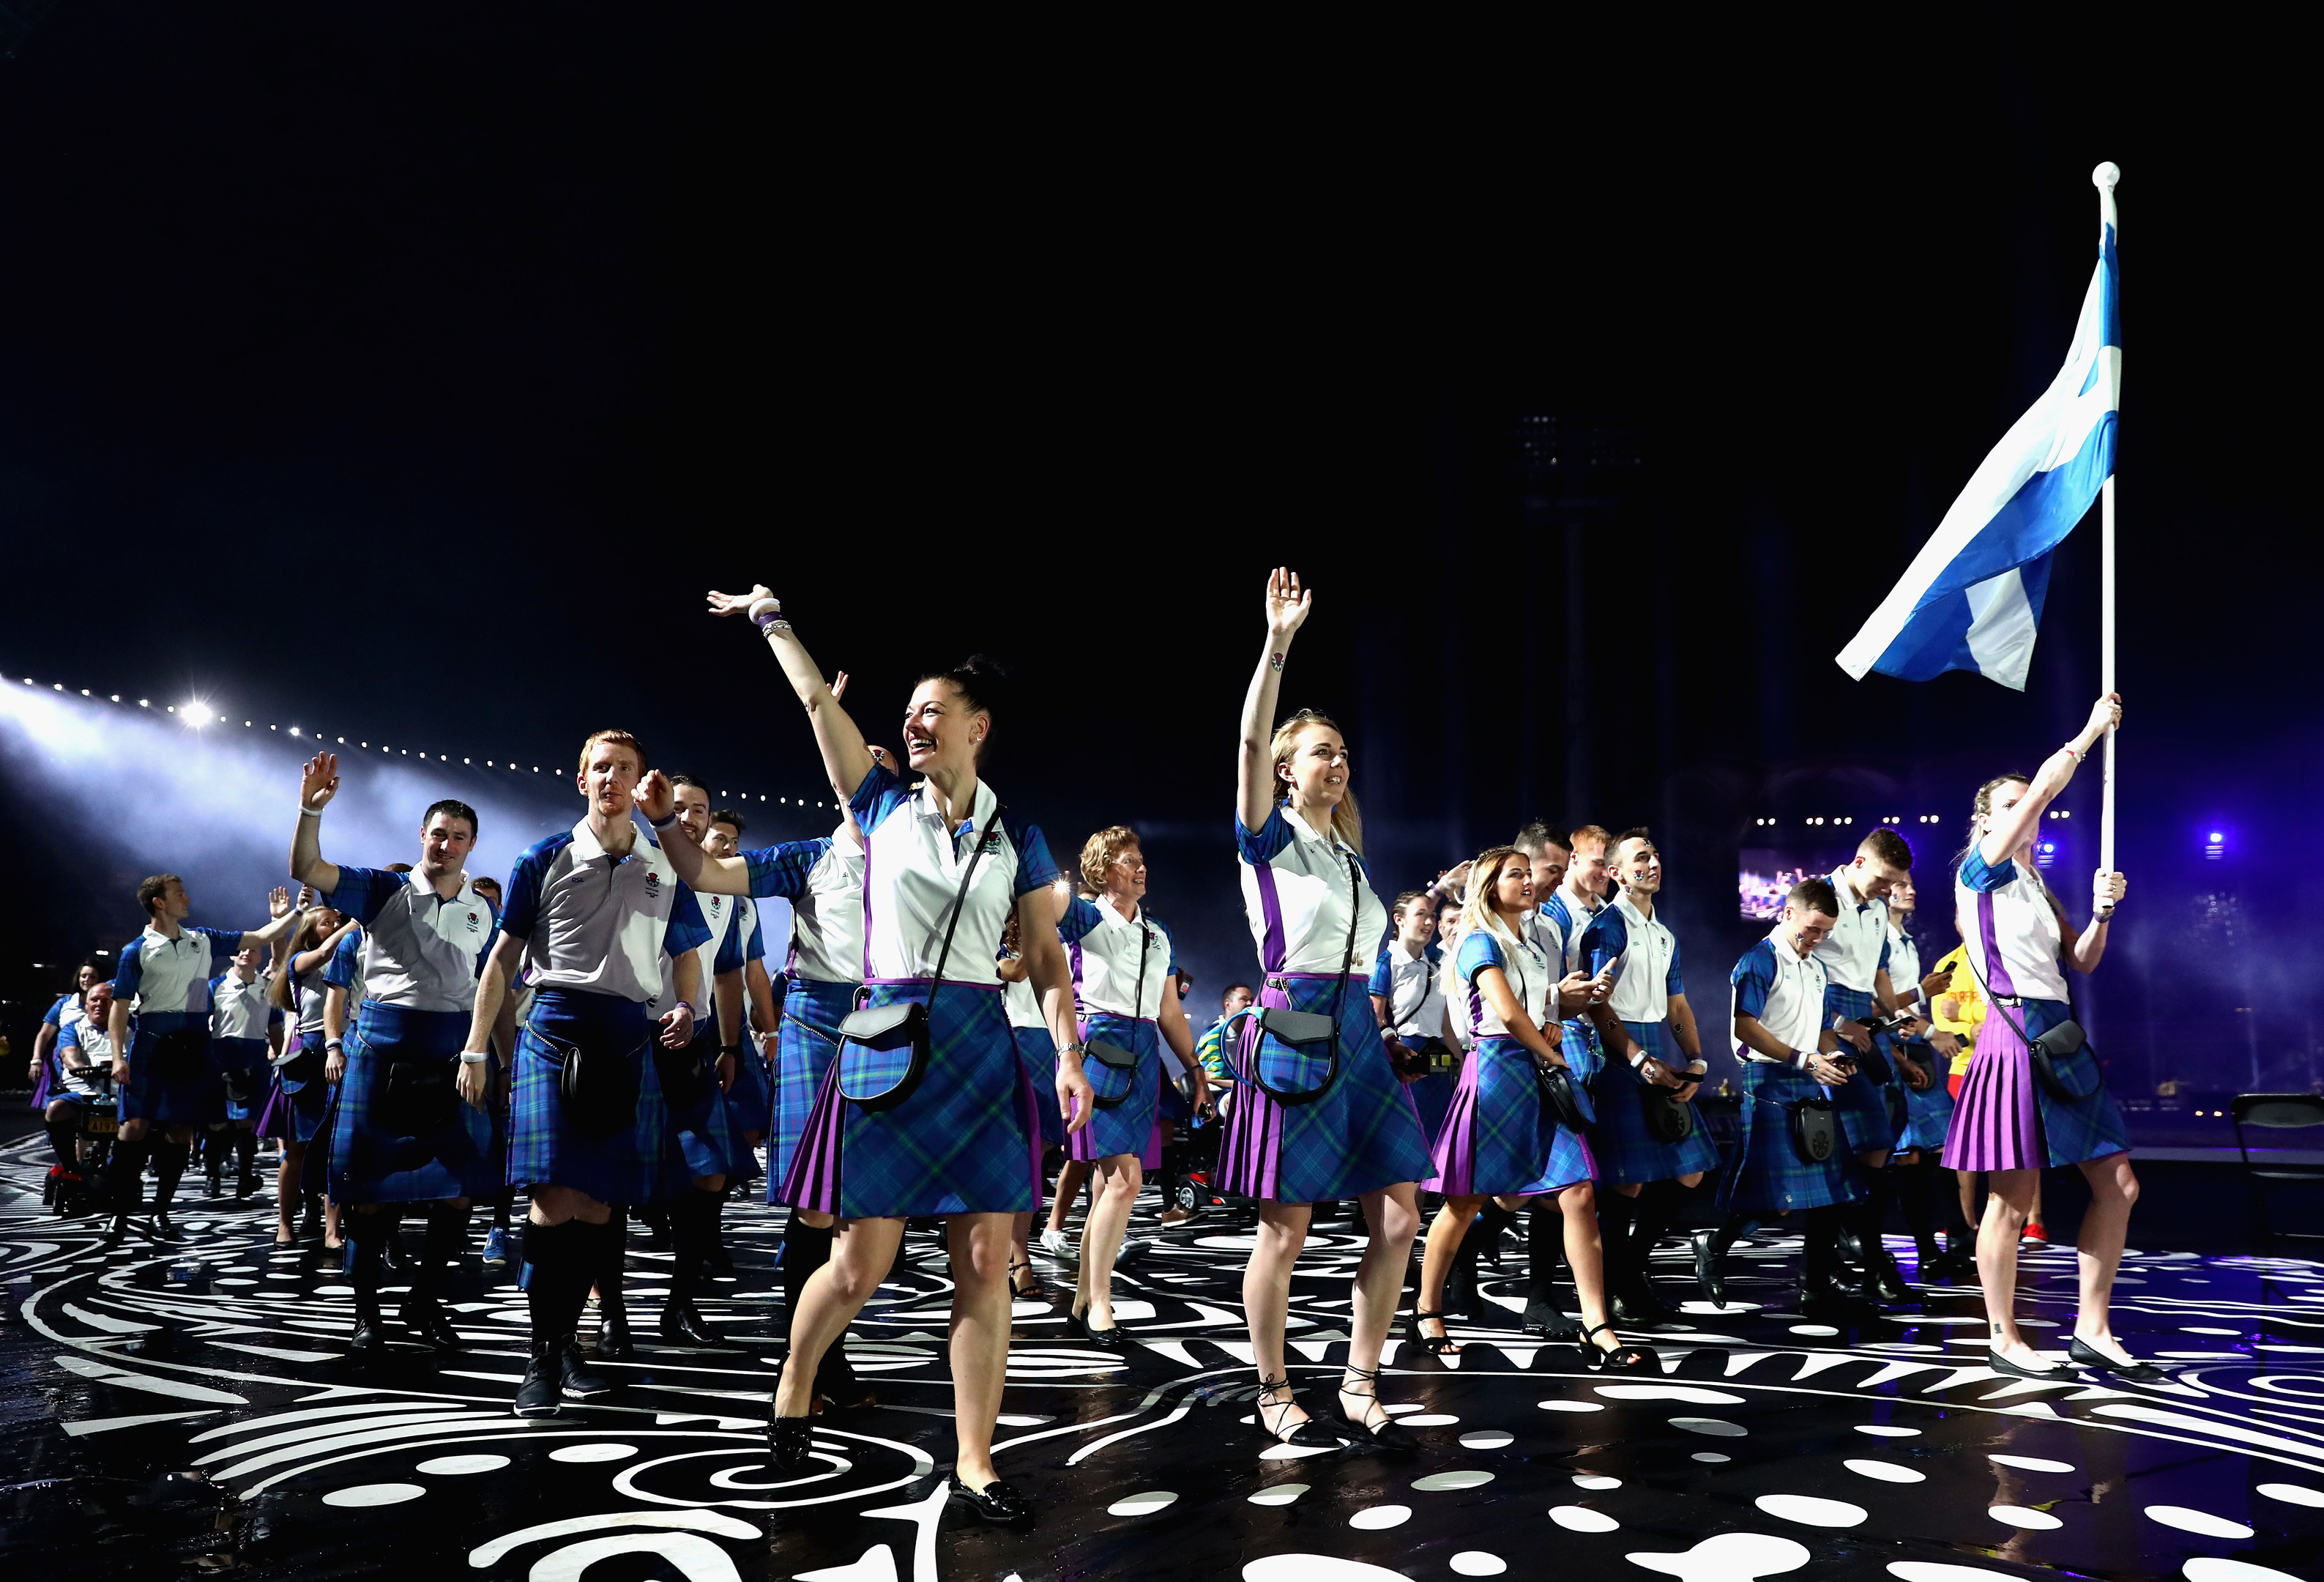 Flag bearer Eilidh Doyle arrives with Team Scotland  (Ryan Pierse/Getty Images)